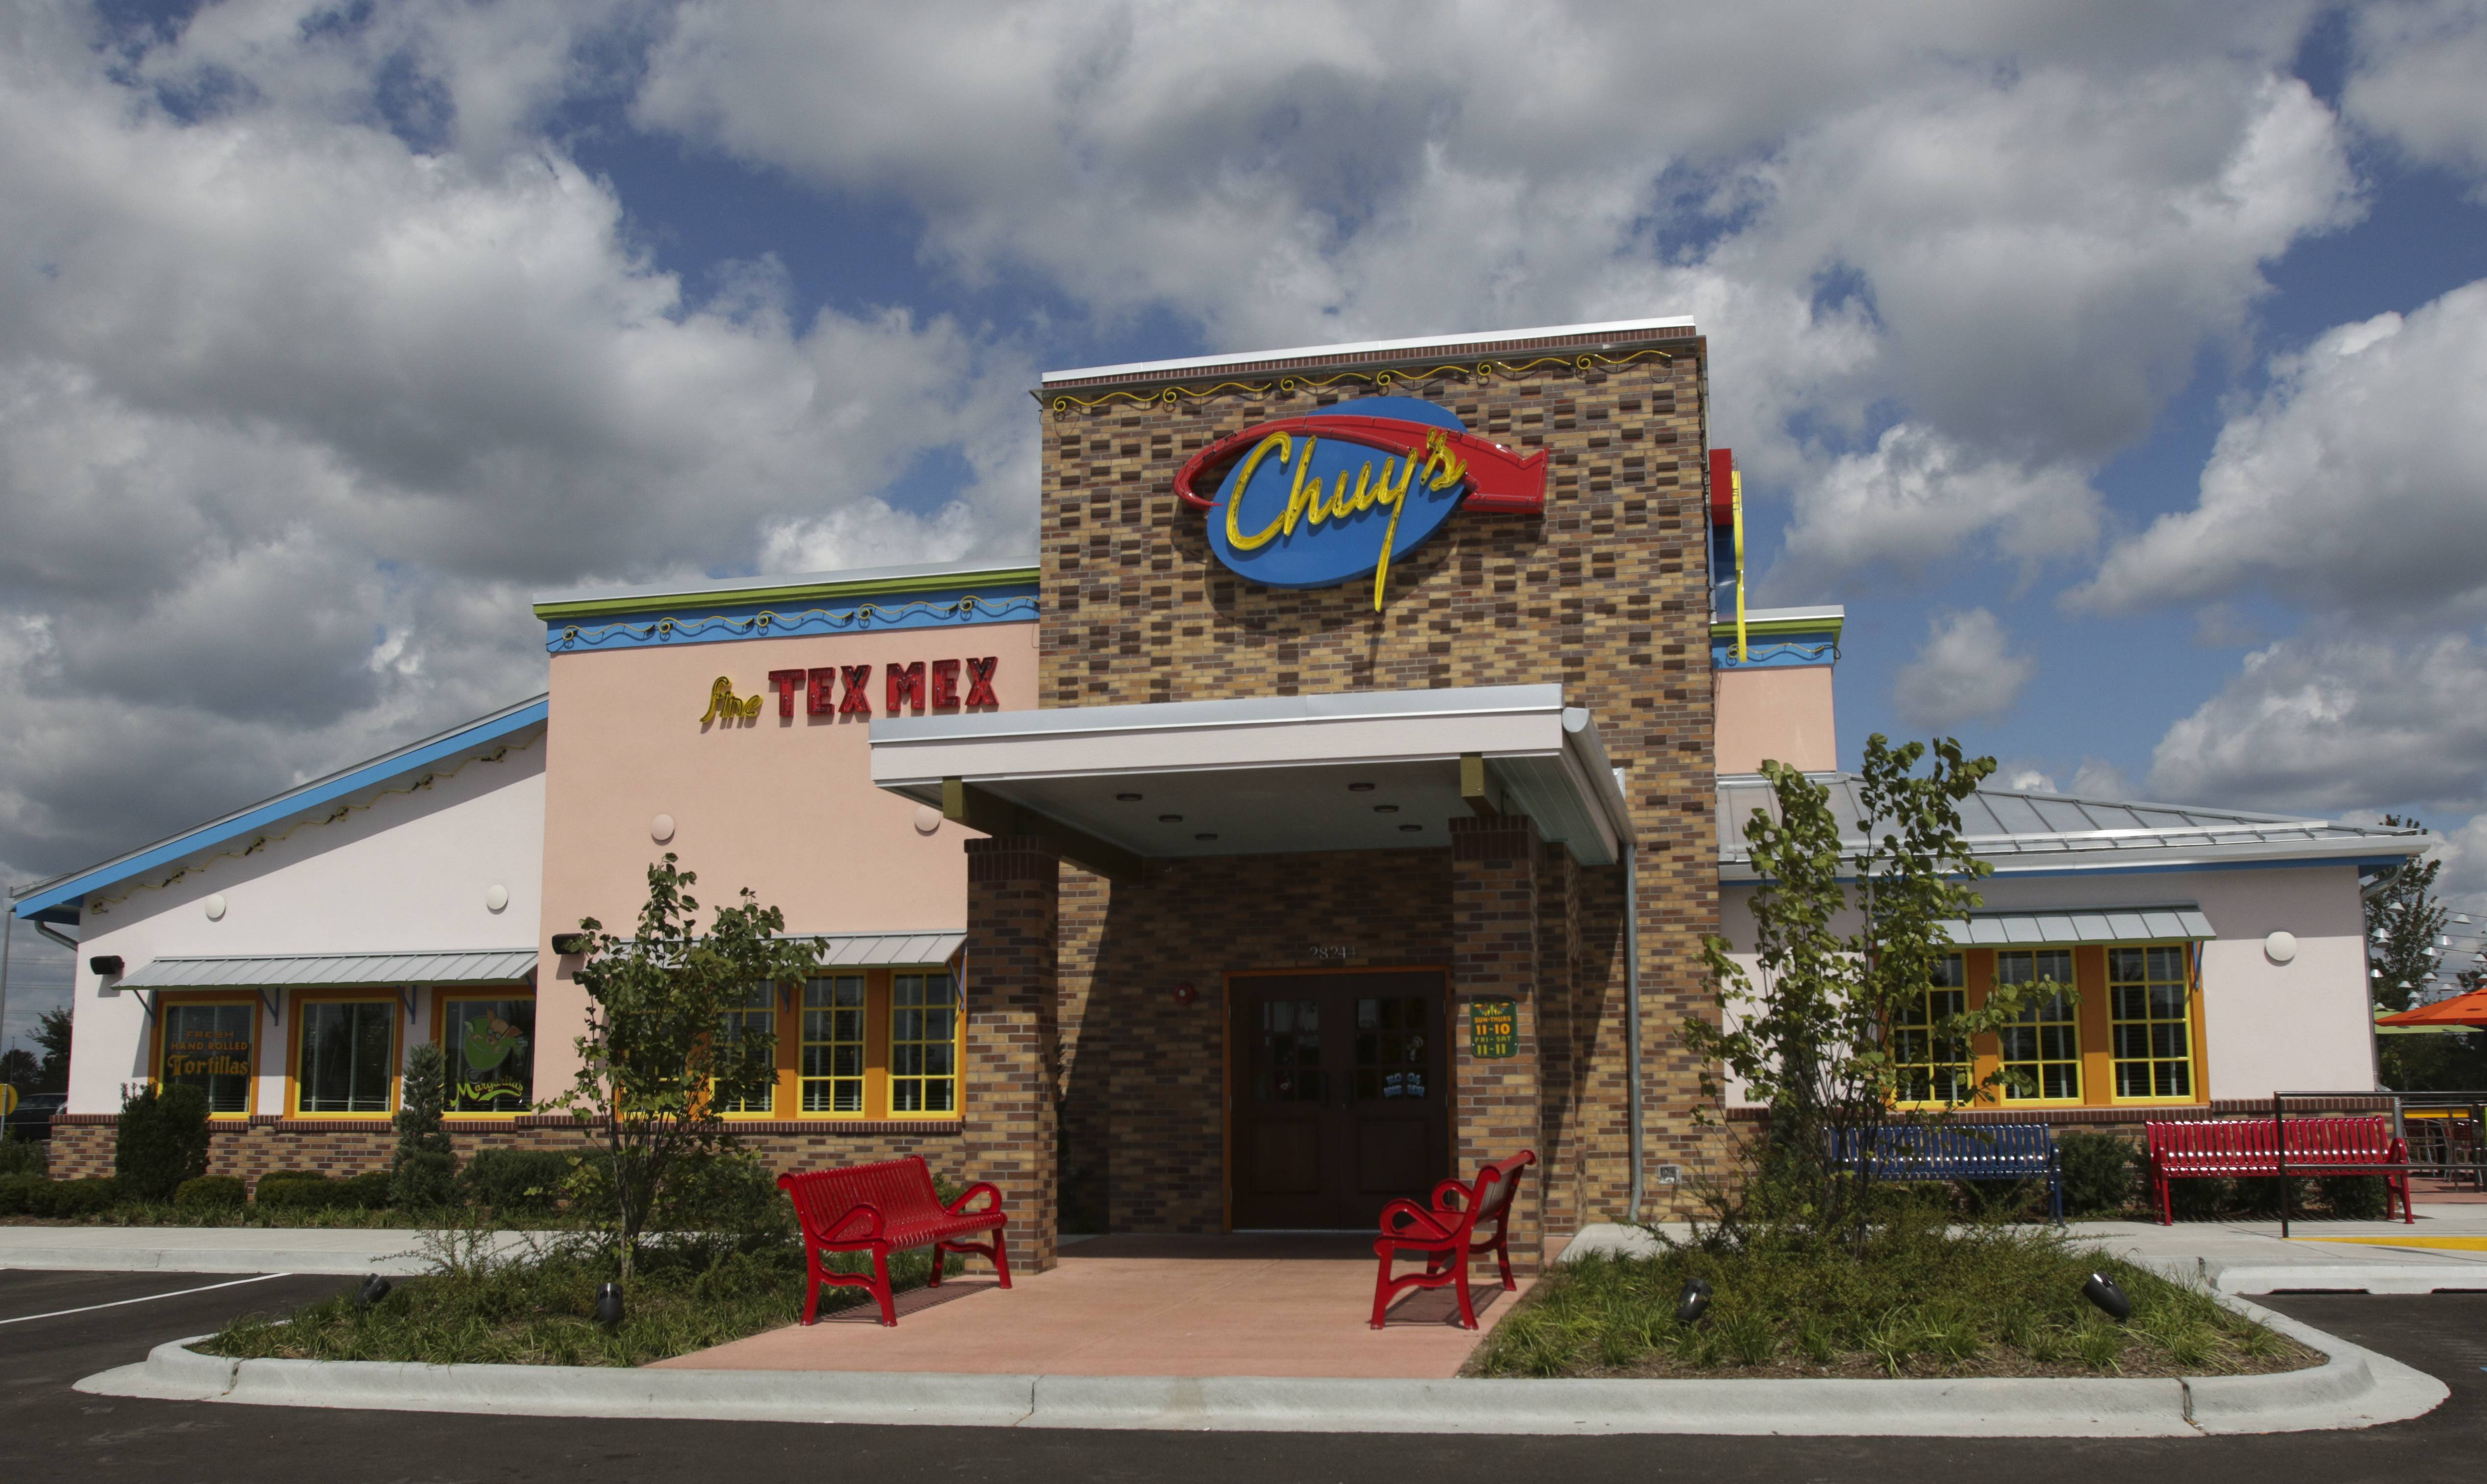 Chuy's Tex-Mex restaurant, which recently opened this location in Warrenville, will open another outside Woodfield Mall in Schaumburg on Tuesday, Oct. 17.